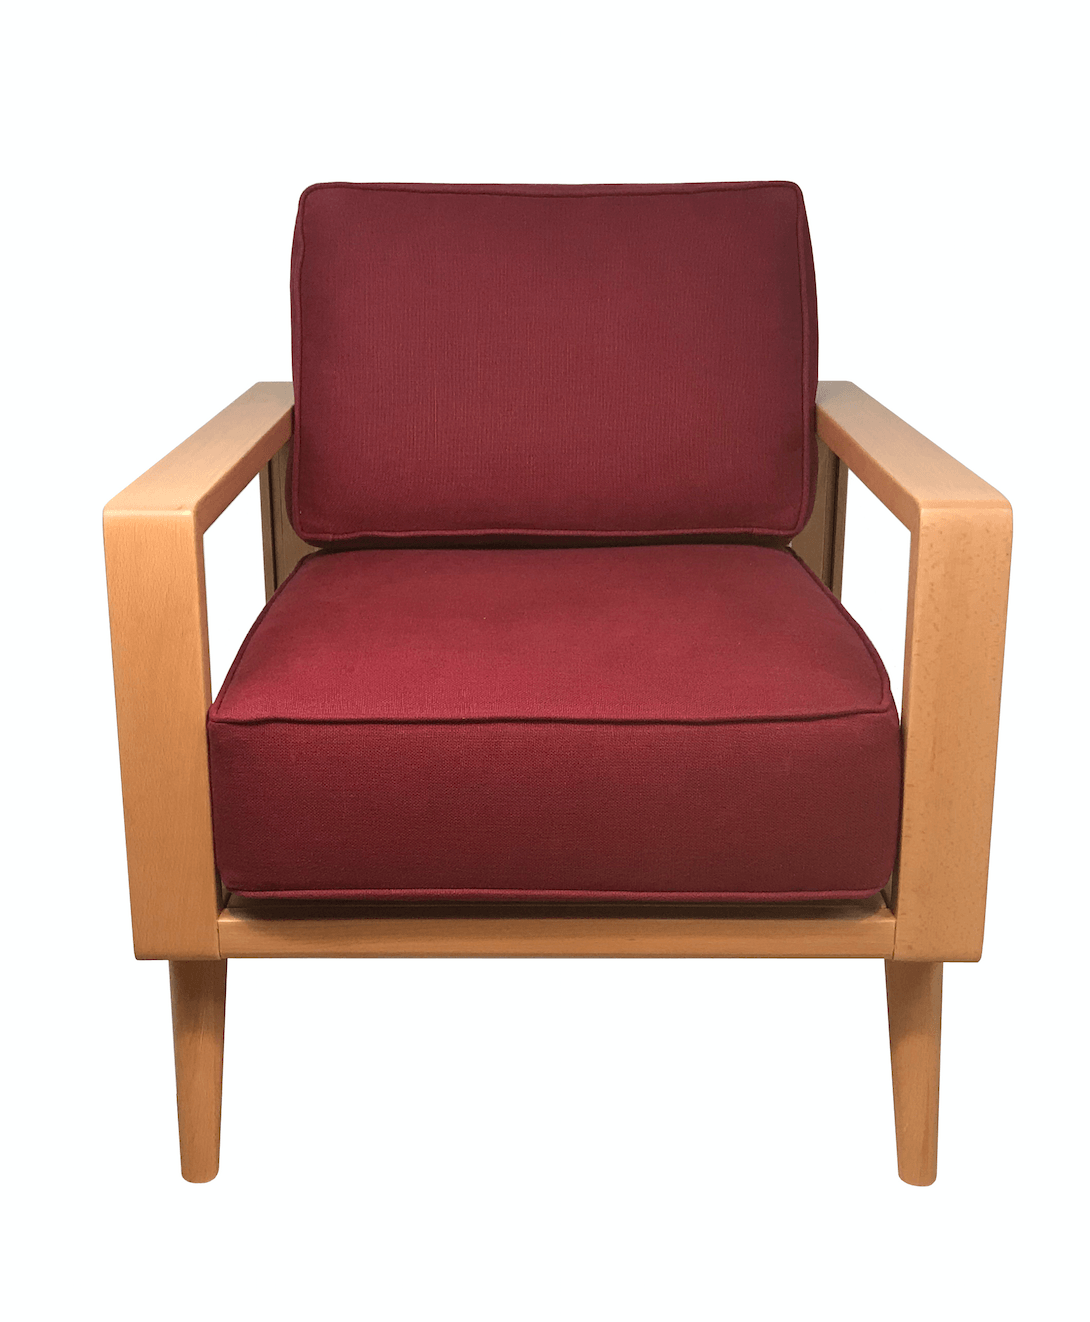 Modern Red Chair Natural Mid Century Modern Lounge Chair Wine Red Twist